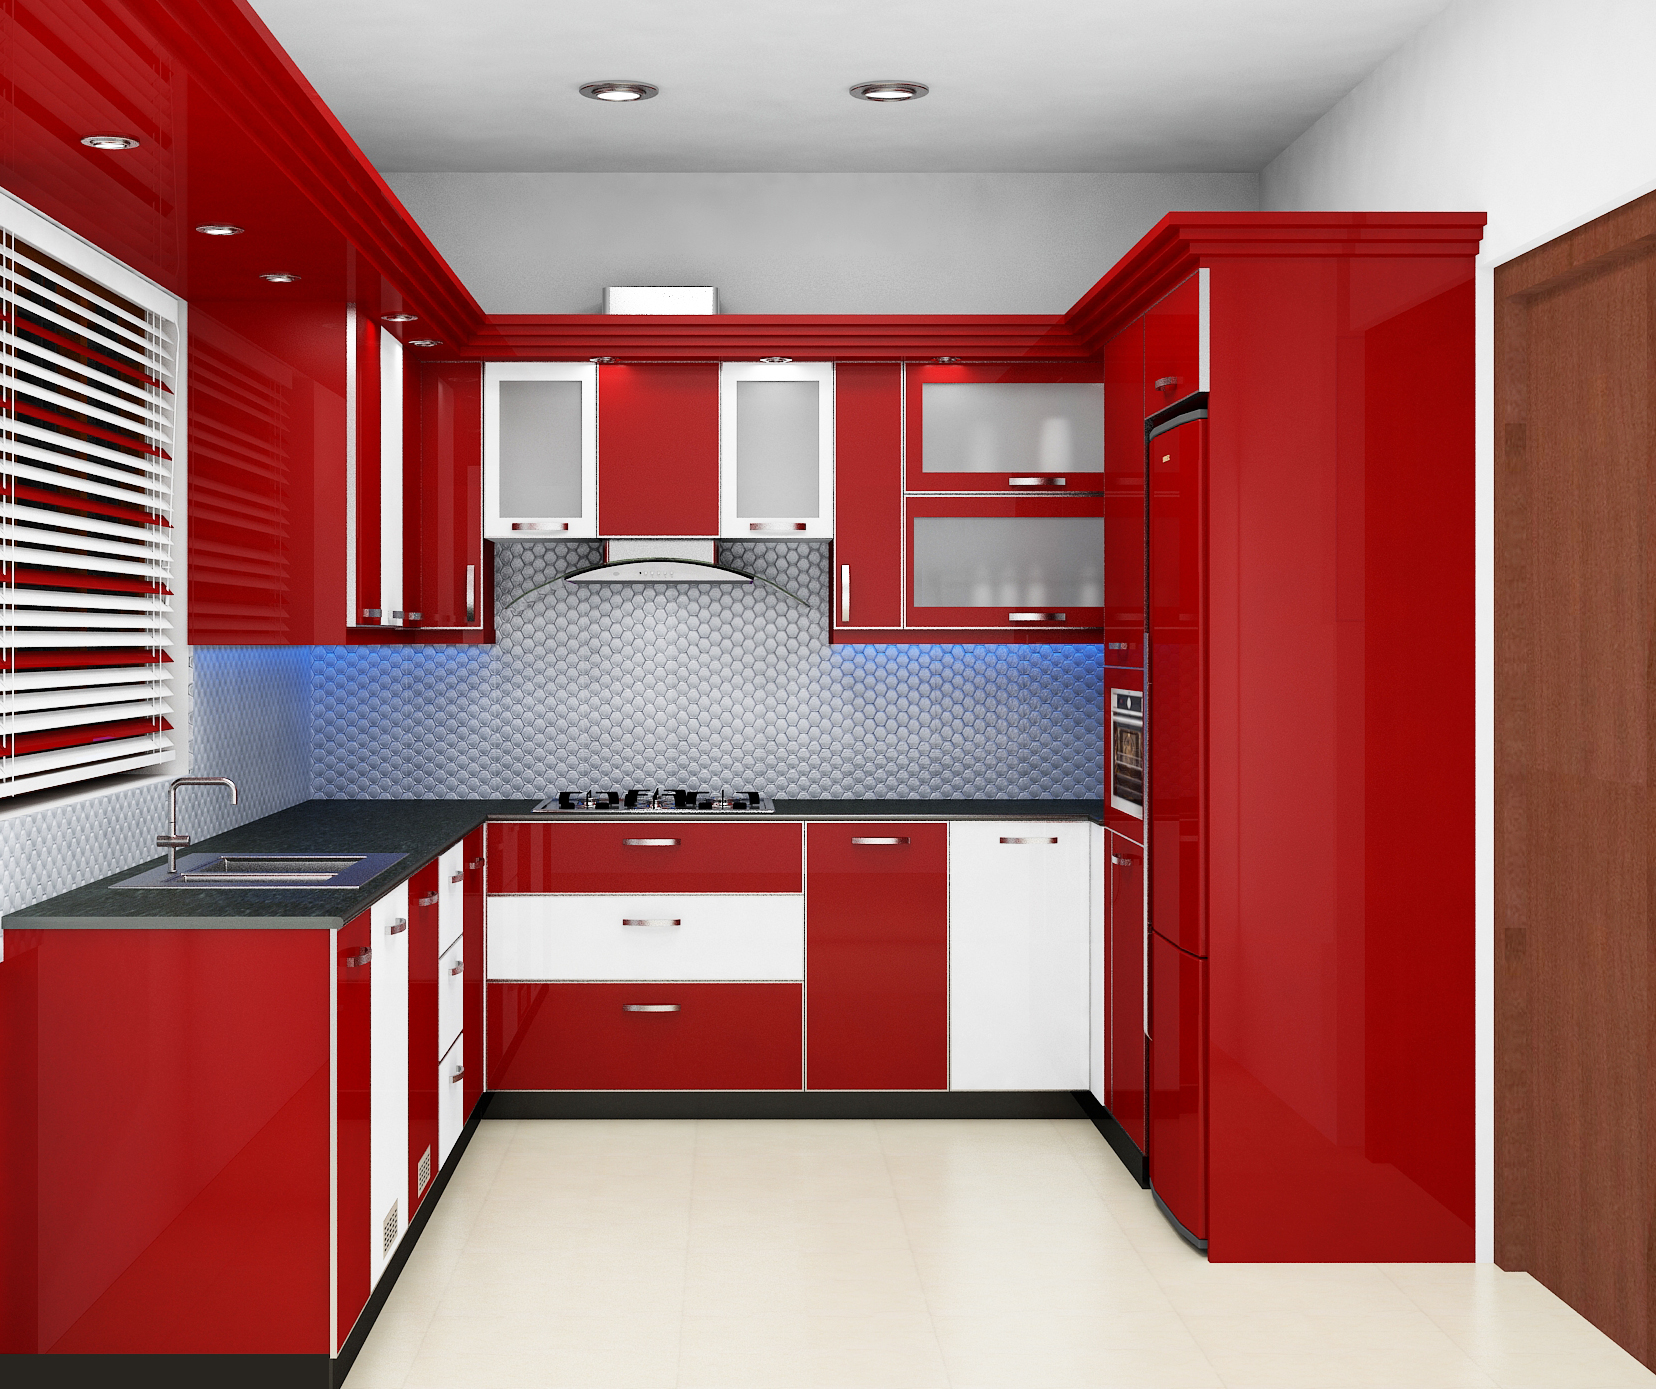 Exemplary and amazing modular kitchen home interior design for Interior designs pictures